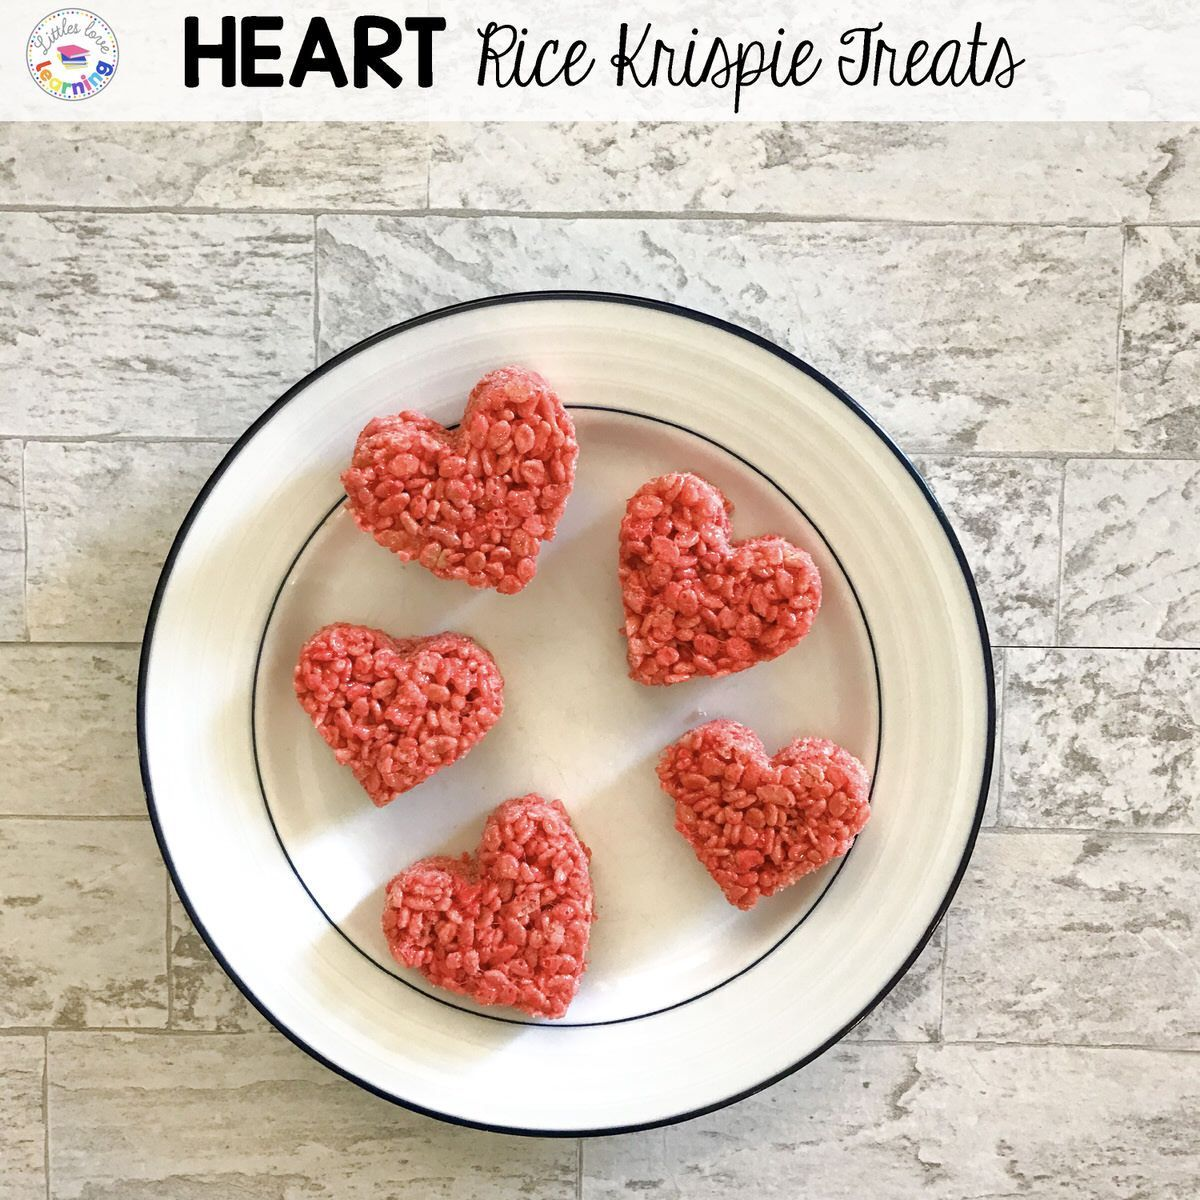 Heart Rice Krispie Treat inspired by Olive My Love for Preschool, Pre-K, and …